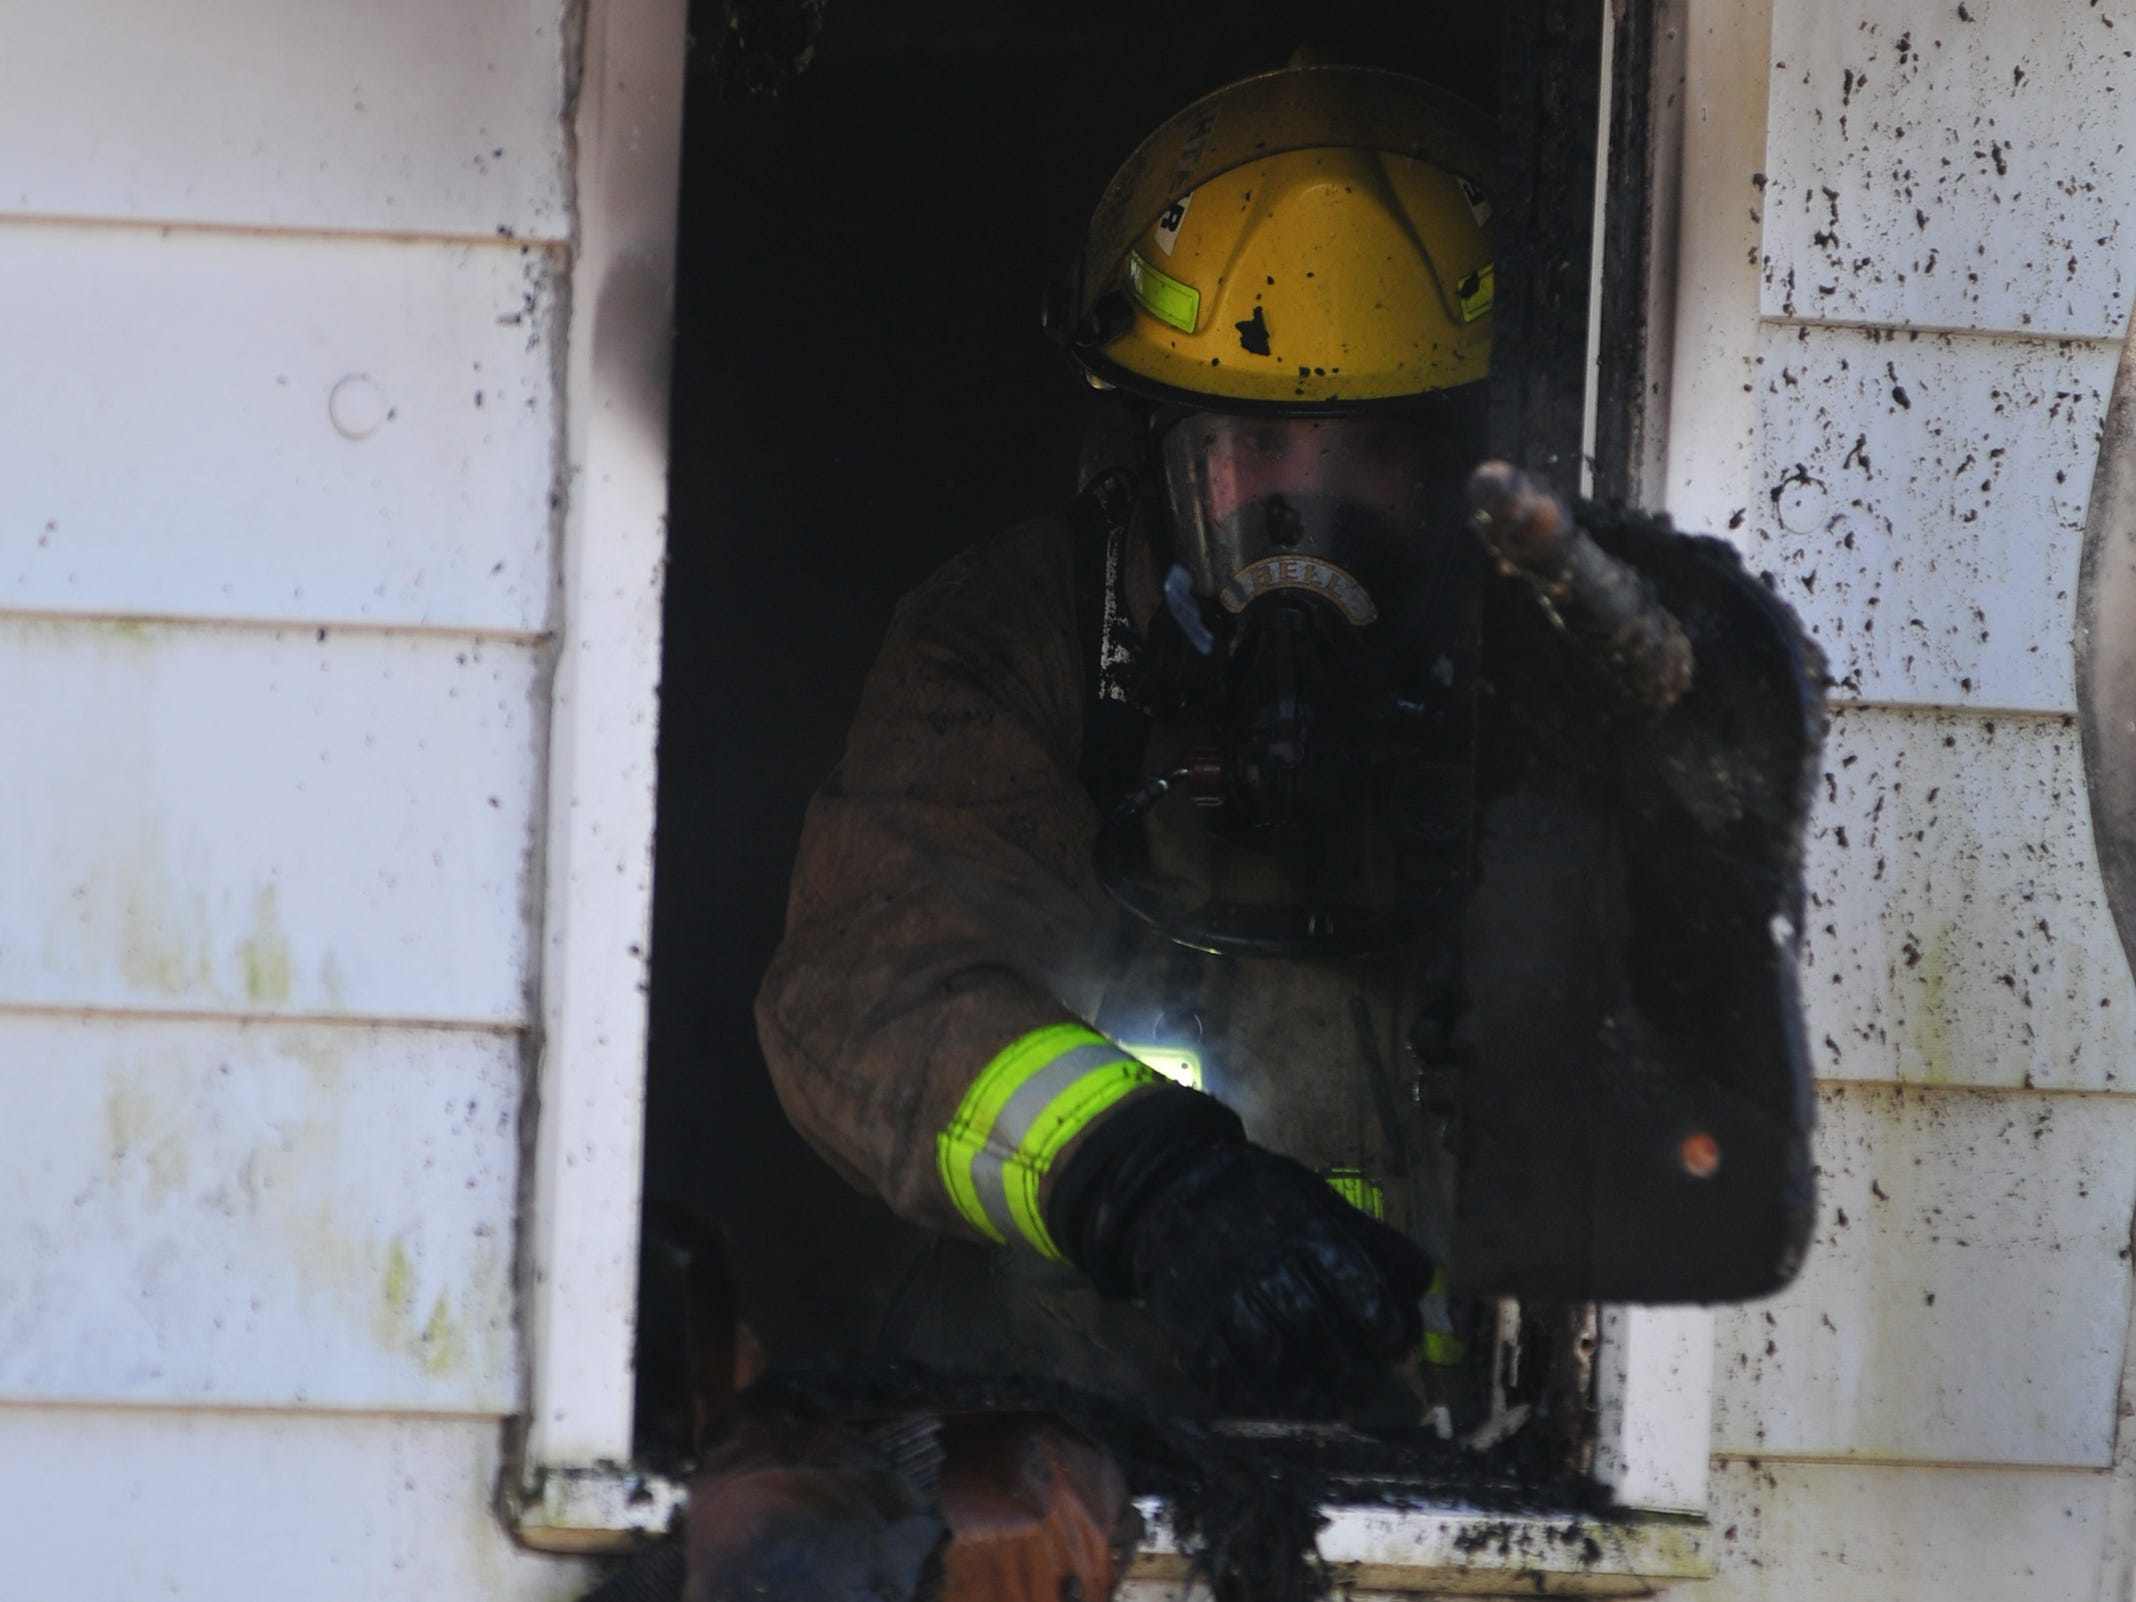 Burned material is tossed out a window of a house in the 2100 block of South 11th Street.